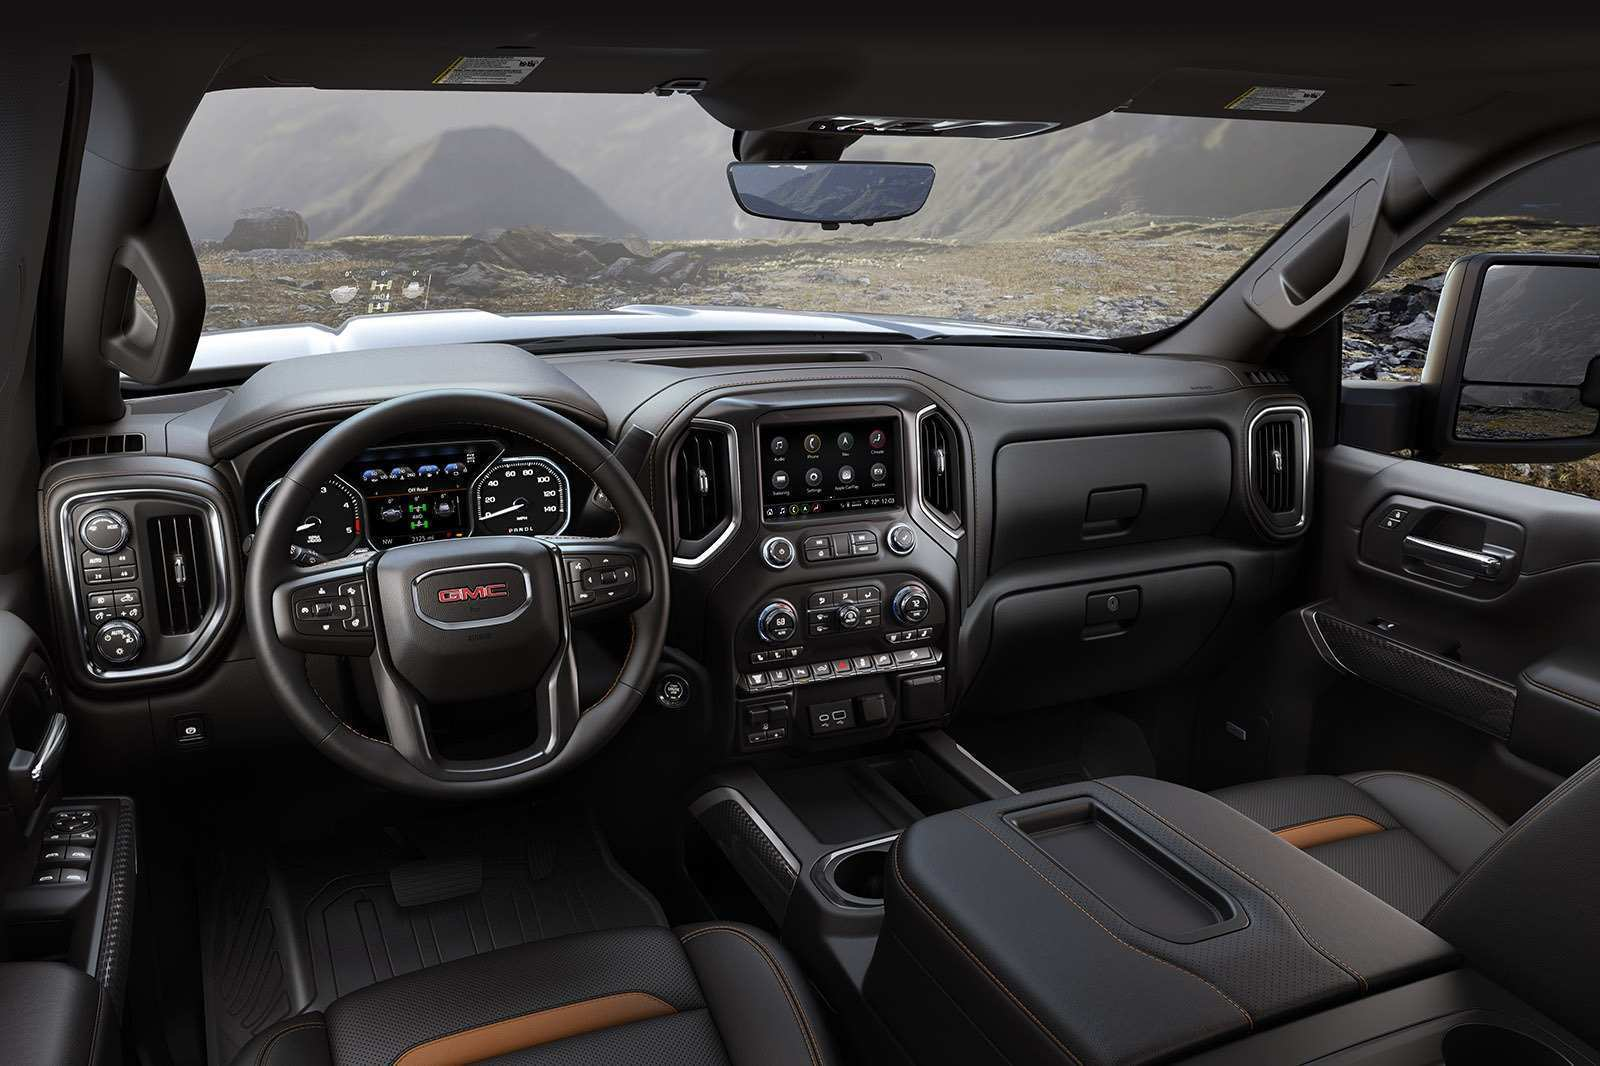 66 The Best 2020 GMC Sierra Exterior And Interior